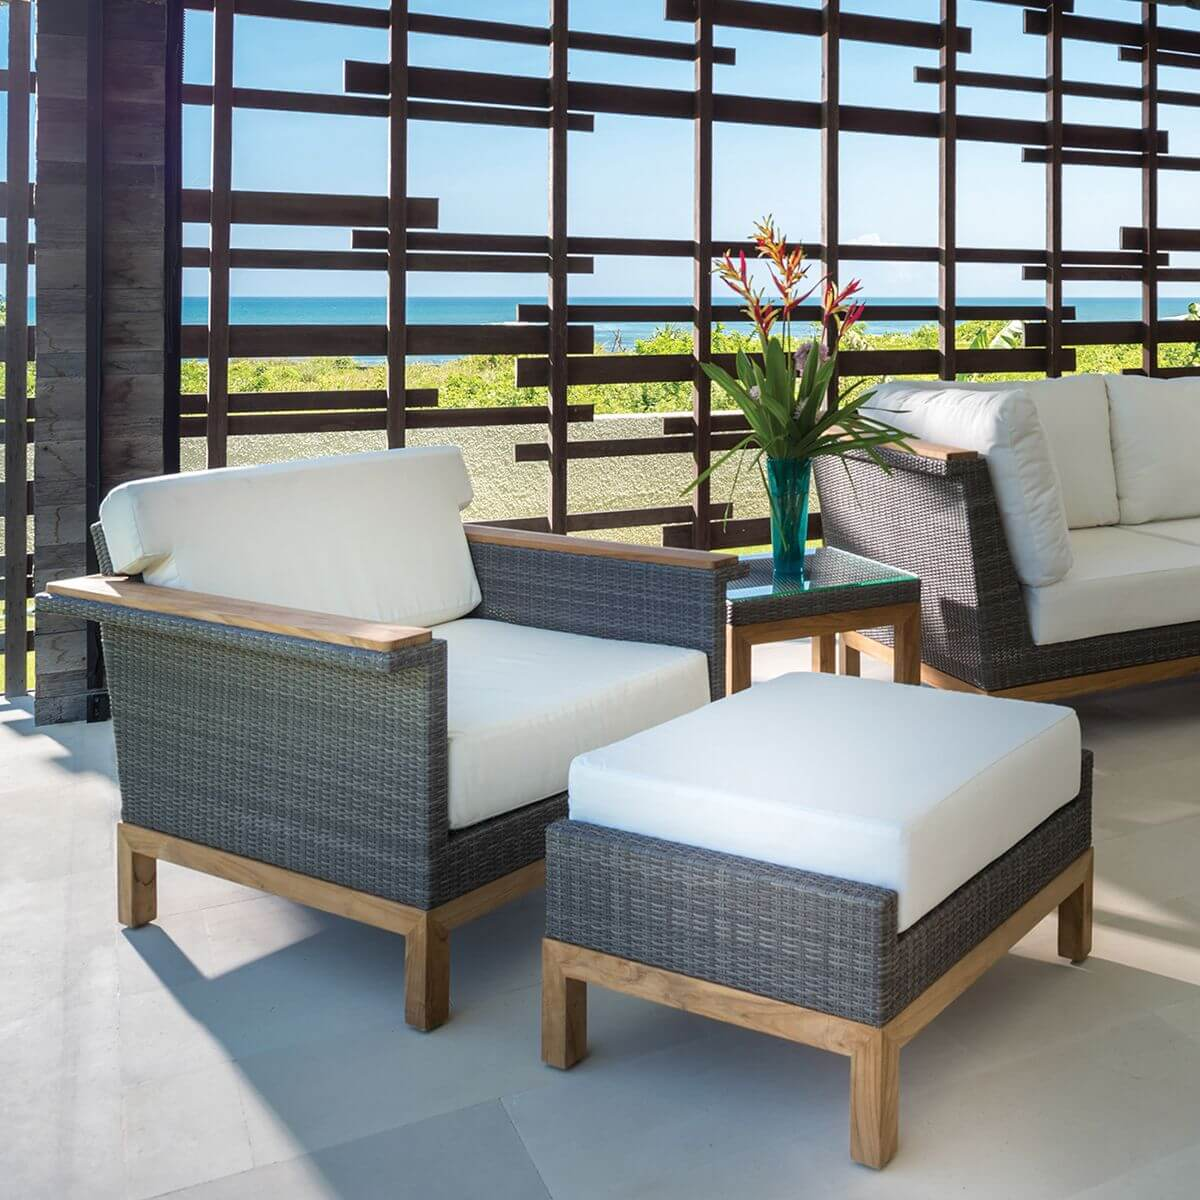 Casual Living Patio & Poolside | furniture-wicker on Casual Living Patio id=51126